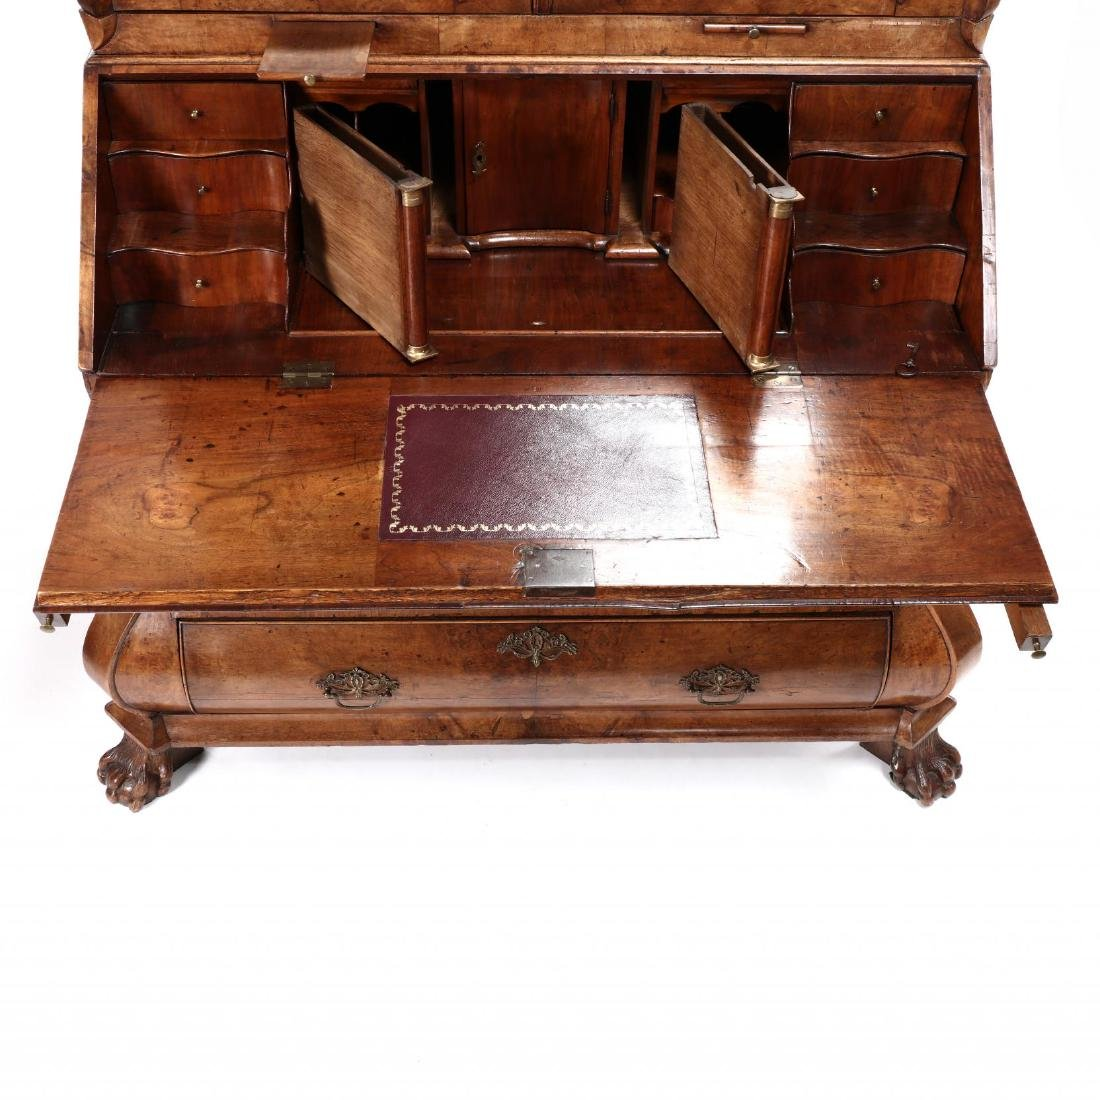 French or Dutch Baroque Bombé Secretaire Bookcase - 3